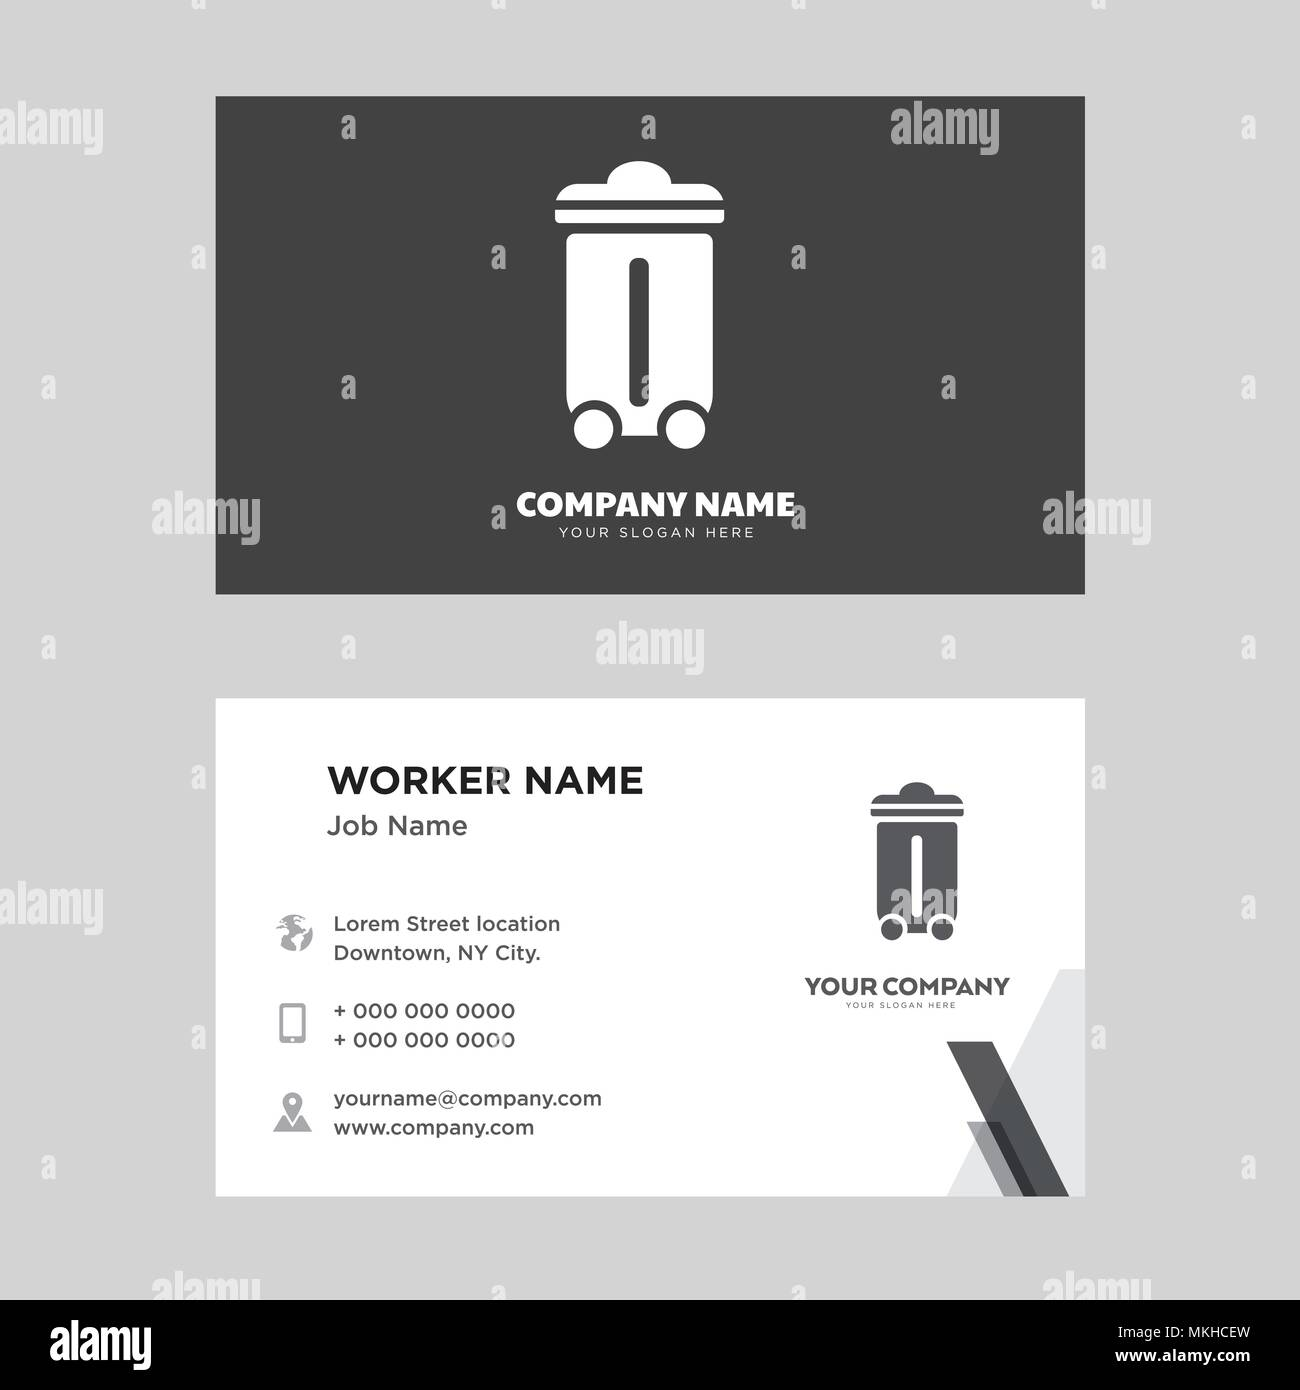 Recycle Bin Business Card Design Template Visiting For Your Company